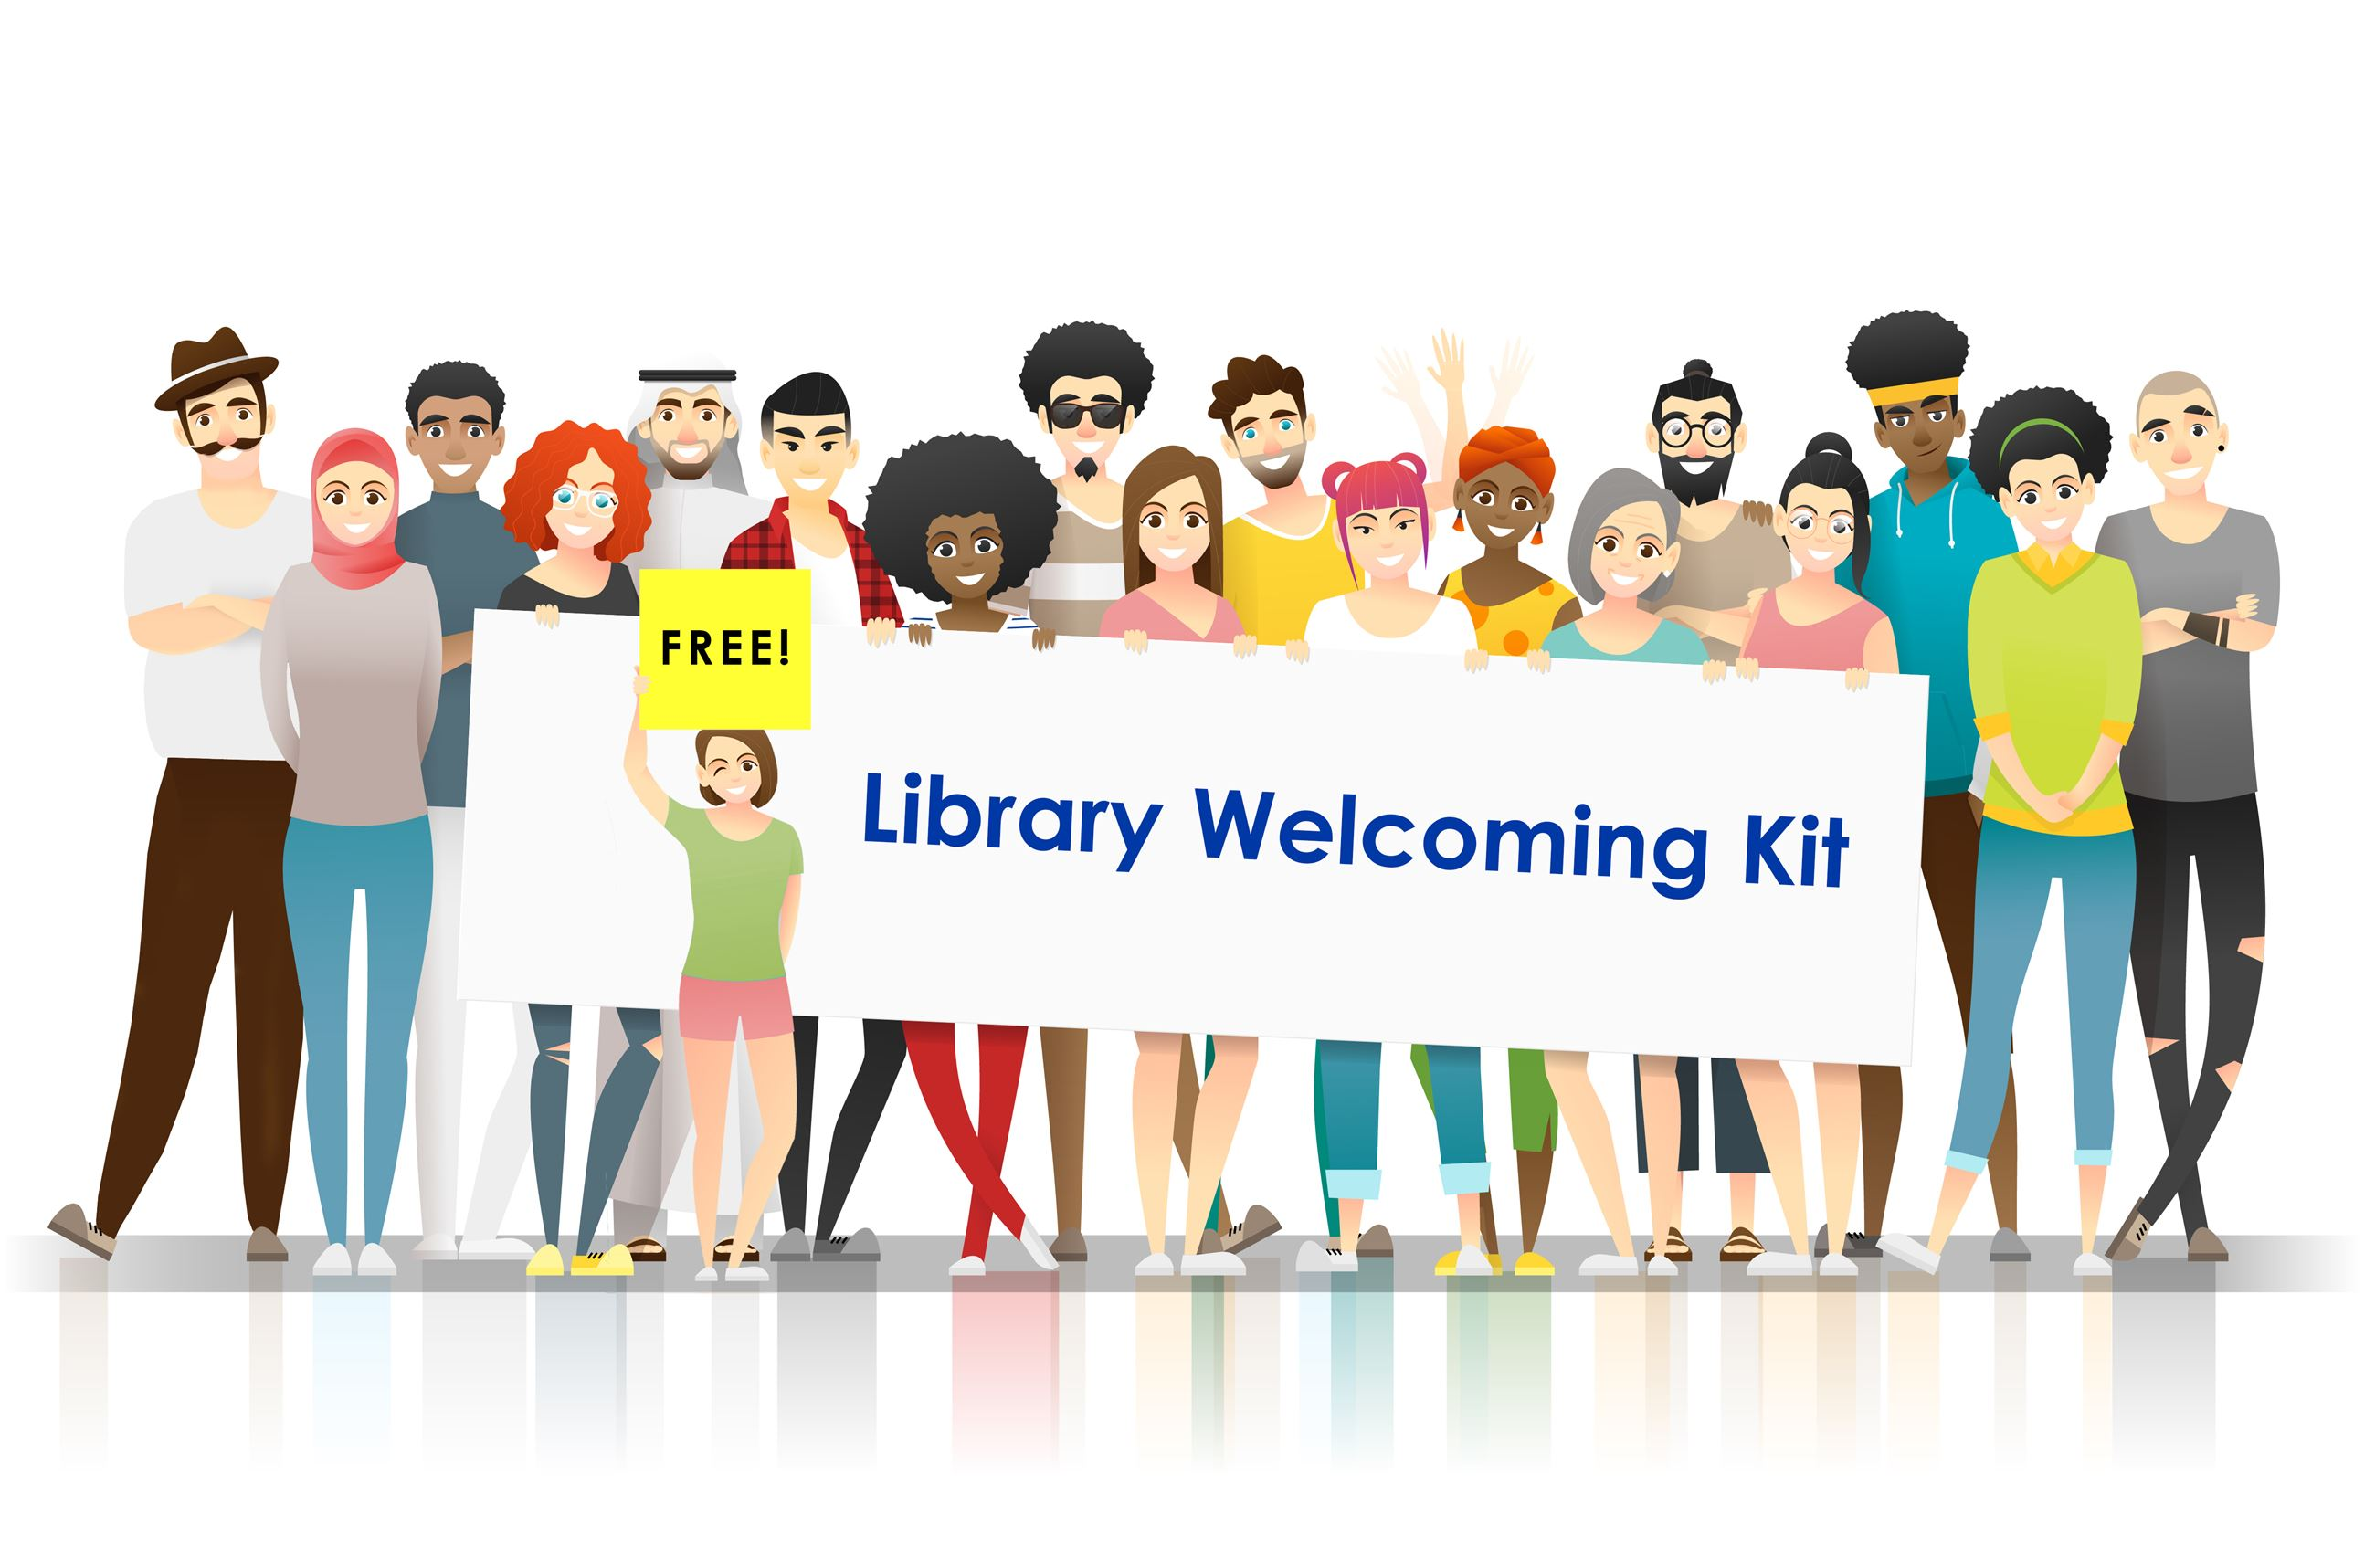 Image with text Free Library Welcoming Kit.